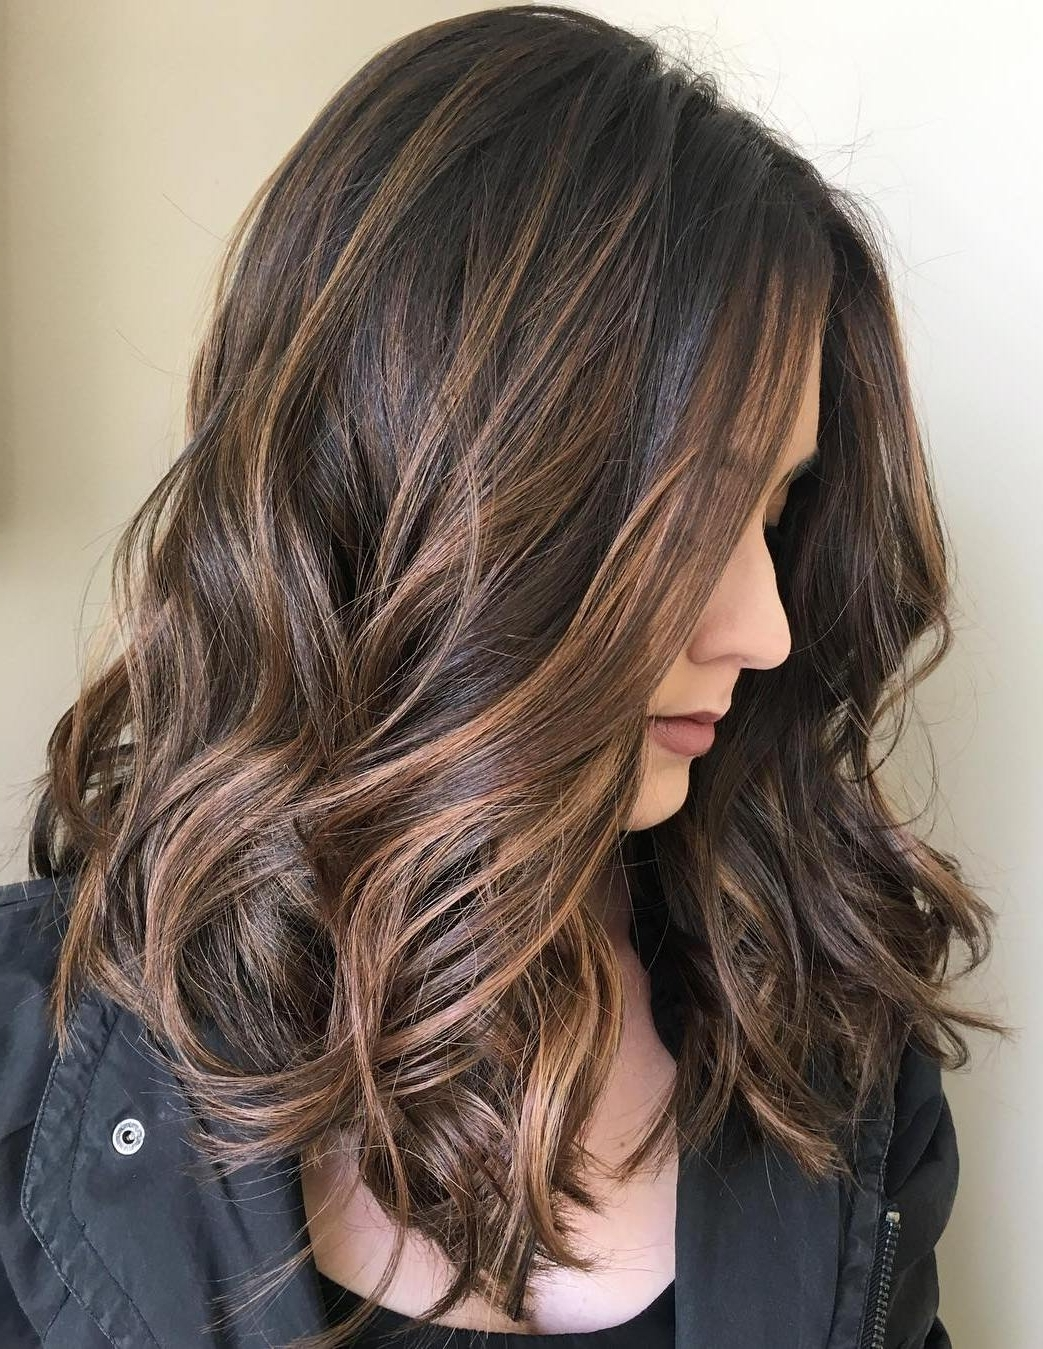 70 Balayage Hair Color Ideas With Blonde, Brown And Caramel Highlights Regarding Most Current Classic Blonde Balayage Hairstyles (View 5 of 20)